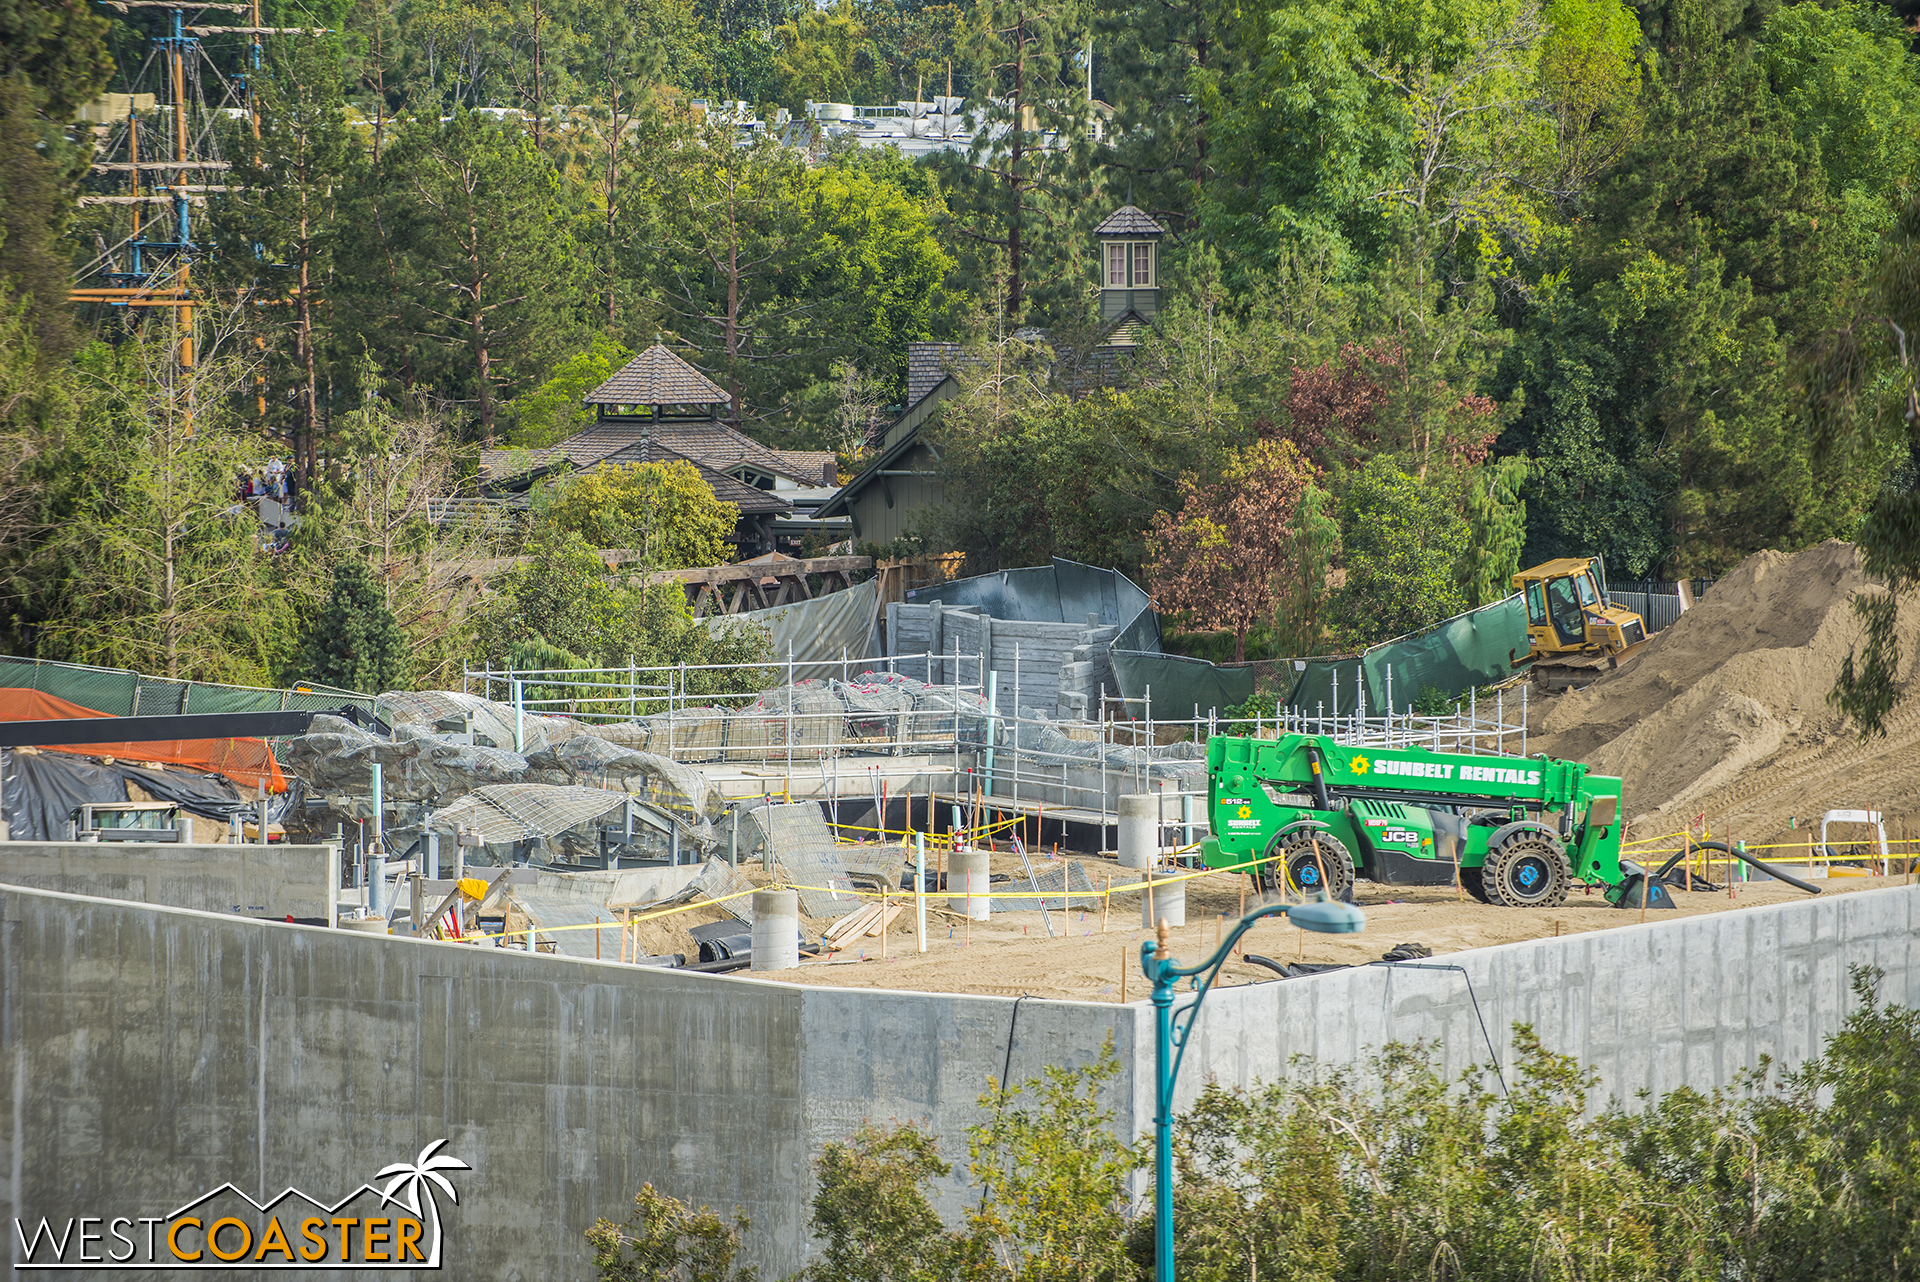 Progress on the Critter Country end remains relatively slow to the public eye.